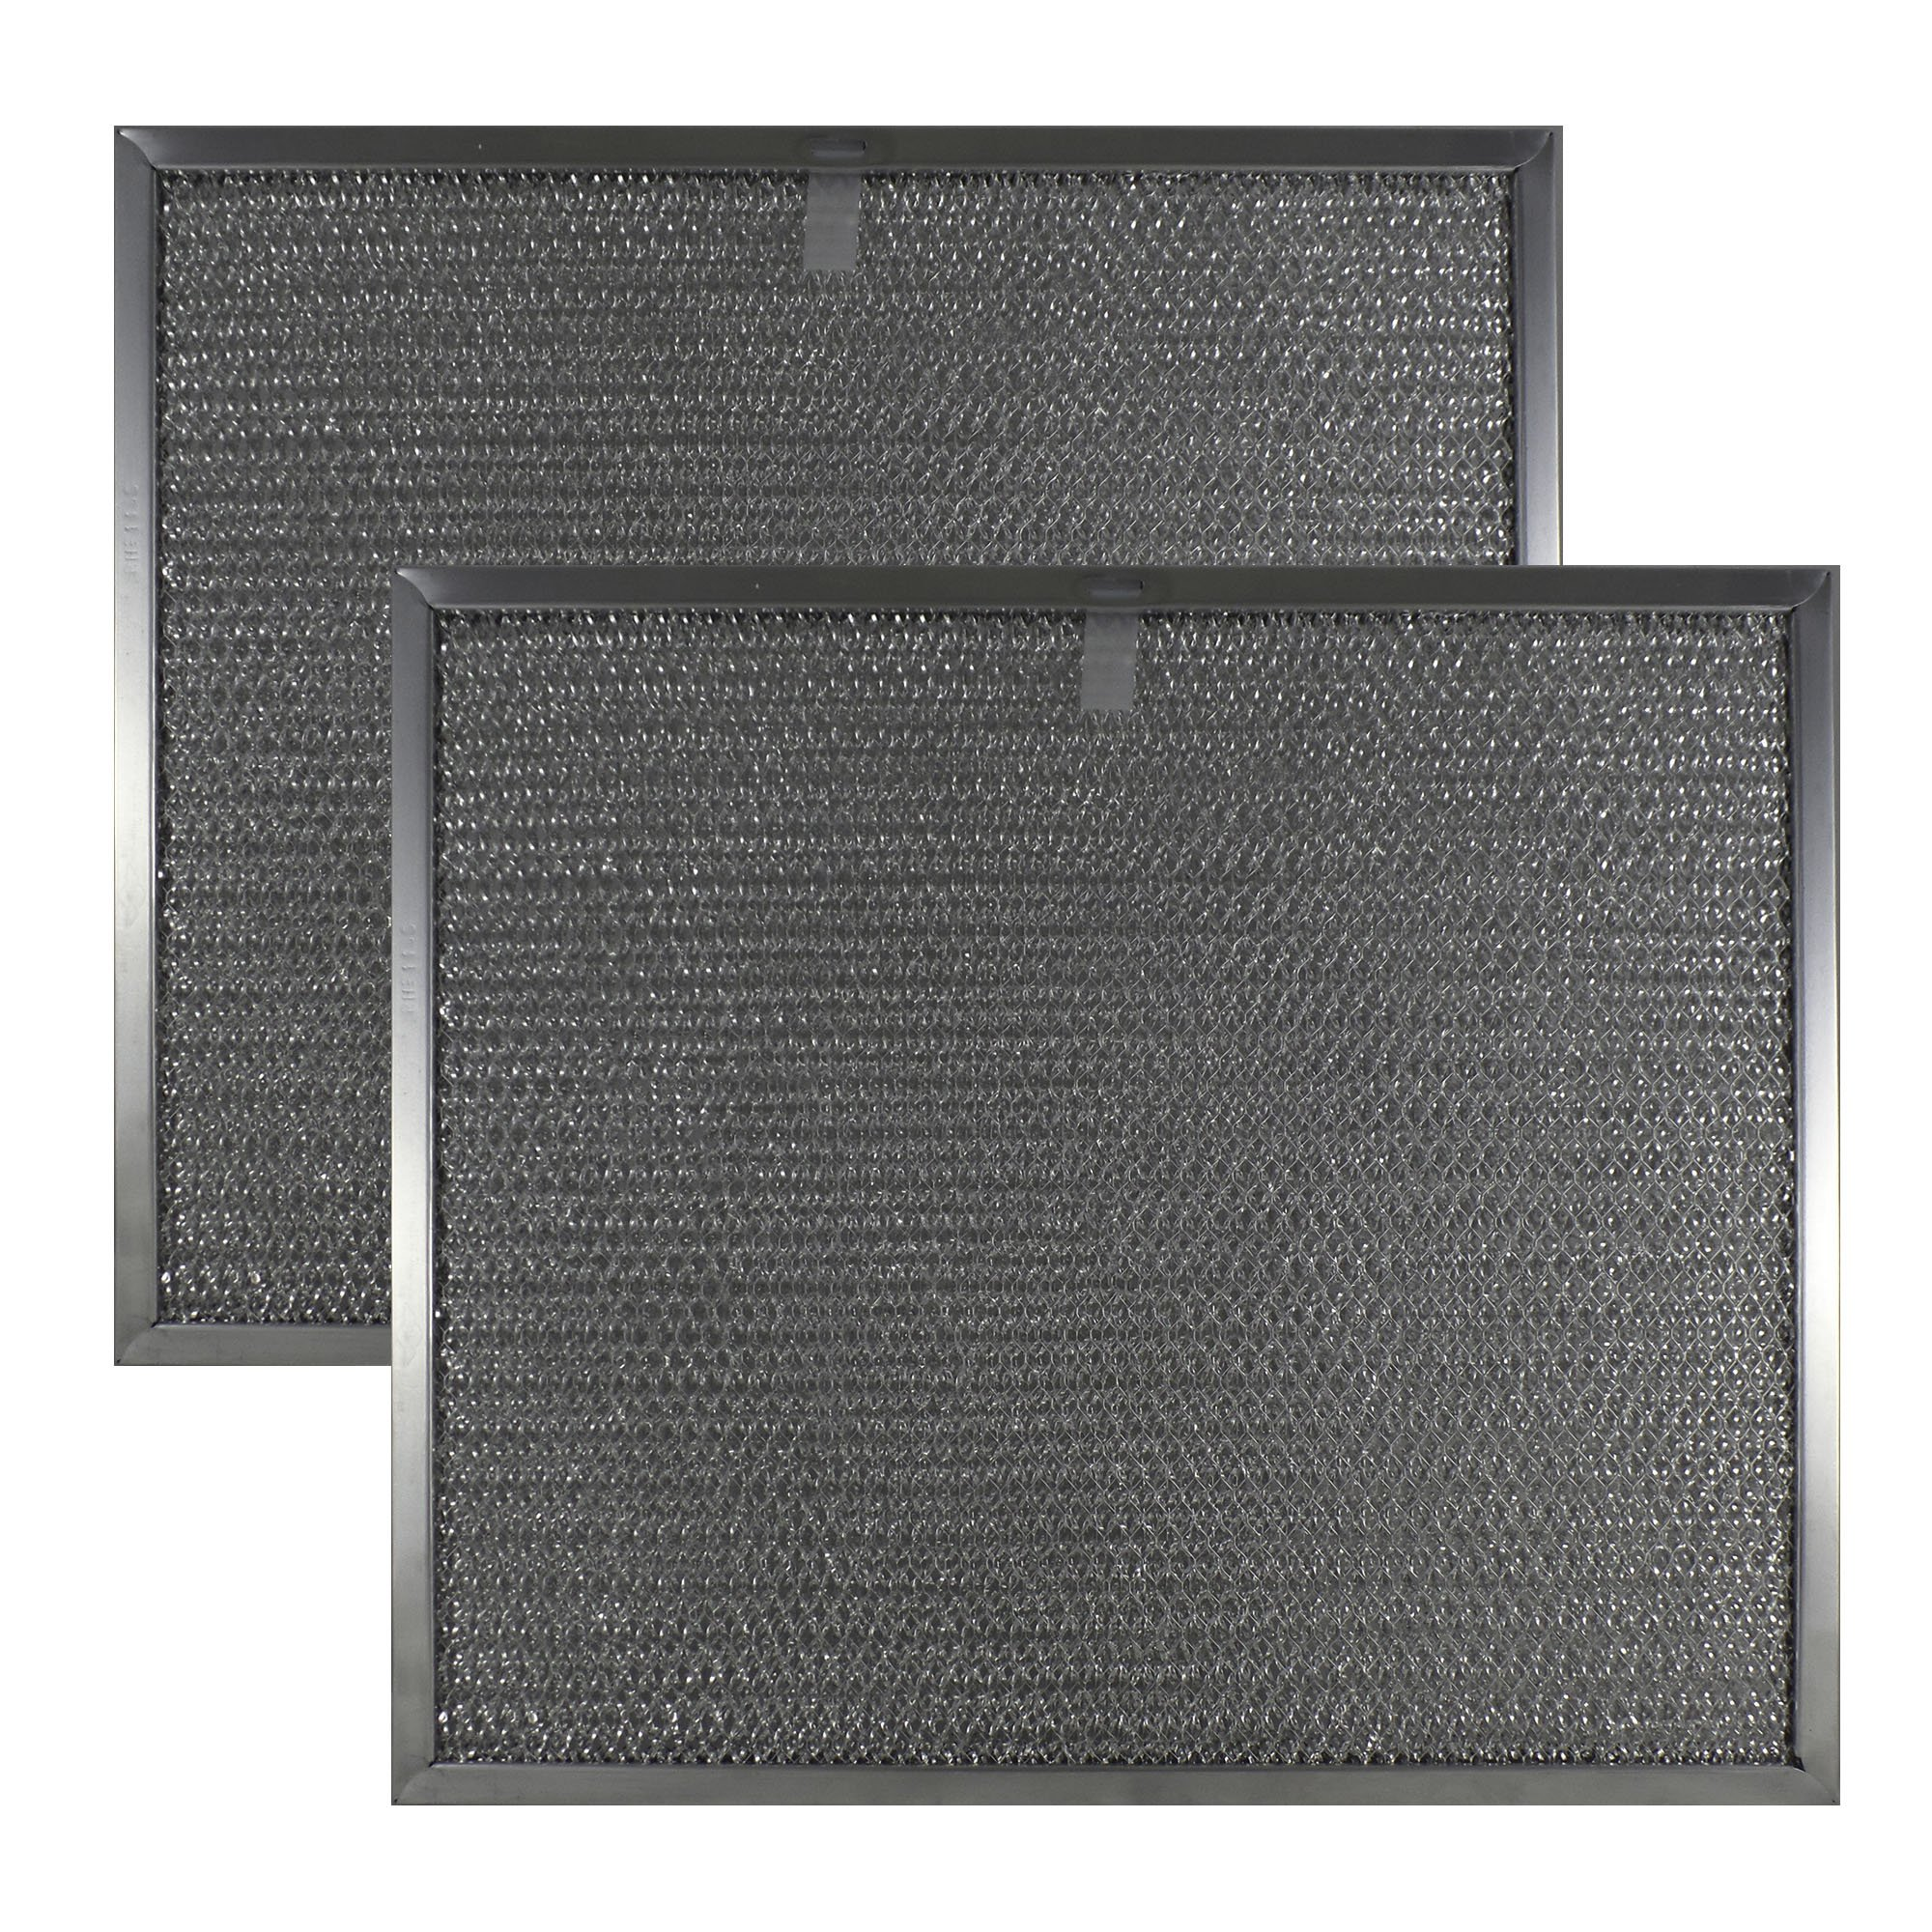 2 Pkg Air Filter Factory Compatible Replacement For Broan BPS1FA30, QS1 & WS1 30'' Range Hood Grease Filters